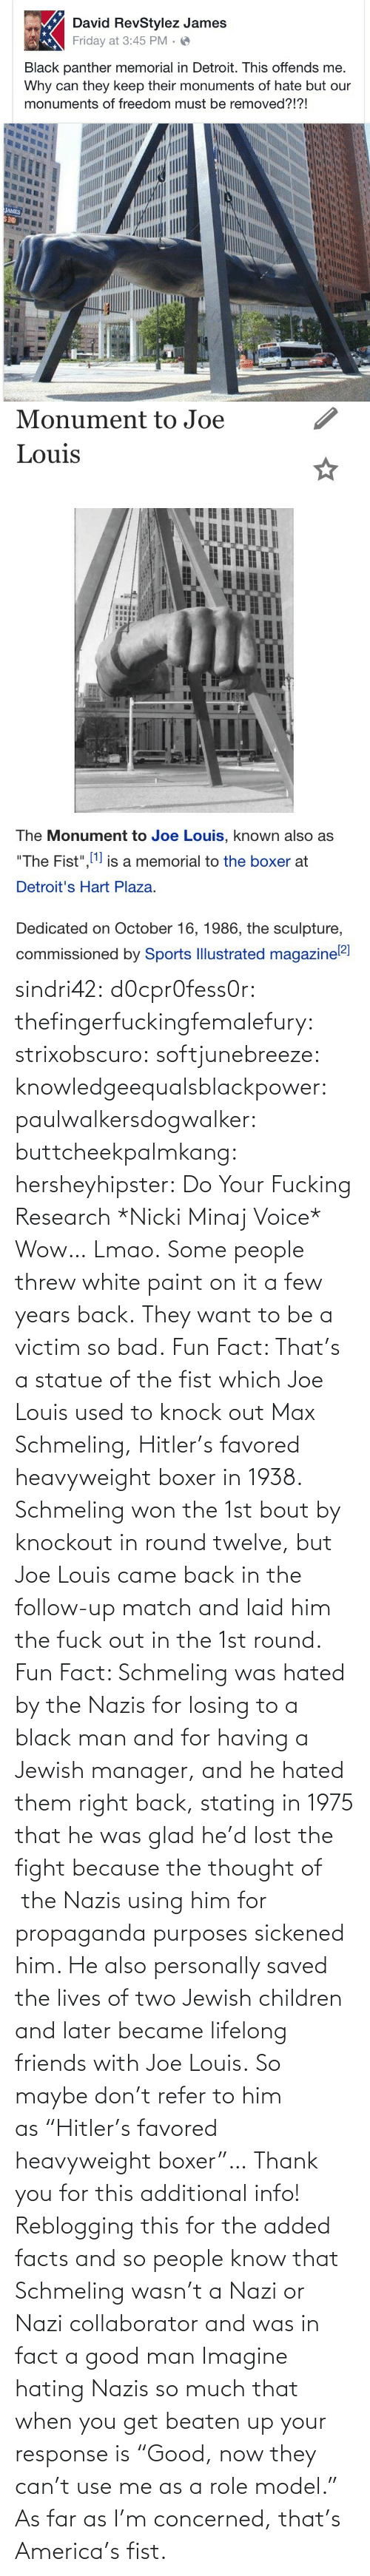 "Black Man: sindri42:  d0cpr0fess0r:  thefingerfuckingfemalefury:  strixobscuro:  softjunebreeze:  knowledgeequalsblackpower:  paulwalkersdogwalker:   buttcheekpalmkang:   hersheyhipster:  Do Your Fucking Research *Nicki Minaj Voice*    Wow… Lmao.   Some people threw white paint on it a few years back.   They want to be a victim so bad.  Fun Fact: That's a statue of the fist which Joe Louis used to knock out Max Schmeling, Hitler's favored heavyweight boxer in 1938. Schmeling won the 1st bout by knockout in round twelve, but Joe Louis came back in the follow-up match and laid him the fuck out in the 1st round.  Fun Fact: Schmeling was hated by the Nazis for losing to a black man and for having a Jewish manager, and he hated them right back, stating in 1975 that he was glad he'd lost the fight because the thought of  the Nazis using him for propaganda purposes sickened him. He also personally saved the lives of two Jewish children and later became lifelong friends with Joe Louis. So maybe don't refer to him as ""Hitler's favored heavyweight boxer""…  Thank you for this additional info! Reblogging this for the added facts and so people know that Schmeling wasn't a Nazi or Nazi collaborator and was in fact a good man   Imagine hating Nazis so much that when you get beaten up your response is ""Good, now they can't use me as a role model.""  As far as I'm concerned, that's America's fist."